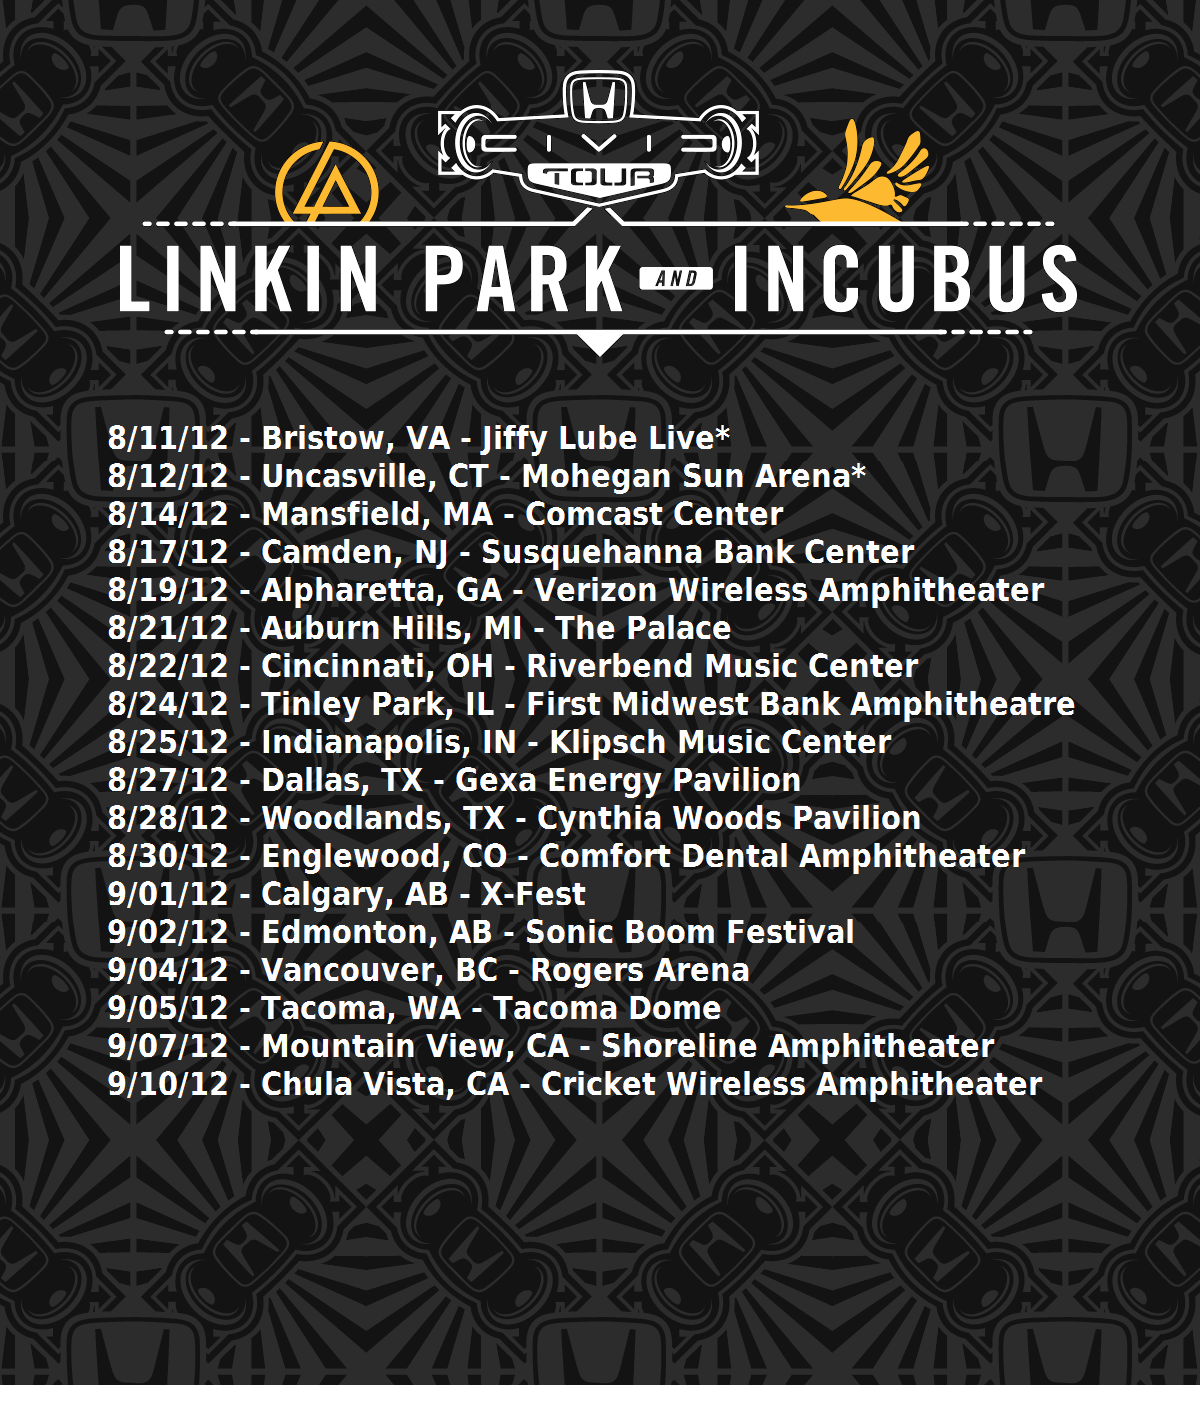 Honda Civic Tour 2012, featuring Linkin Park and Incubus. I will be at the  concert in Cincinnatti! I can't wait!